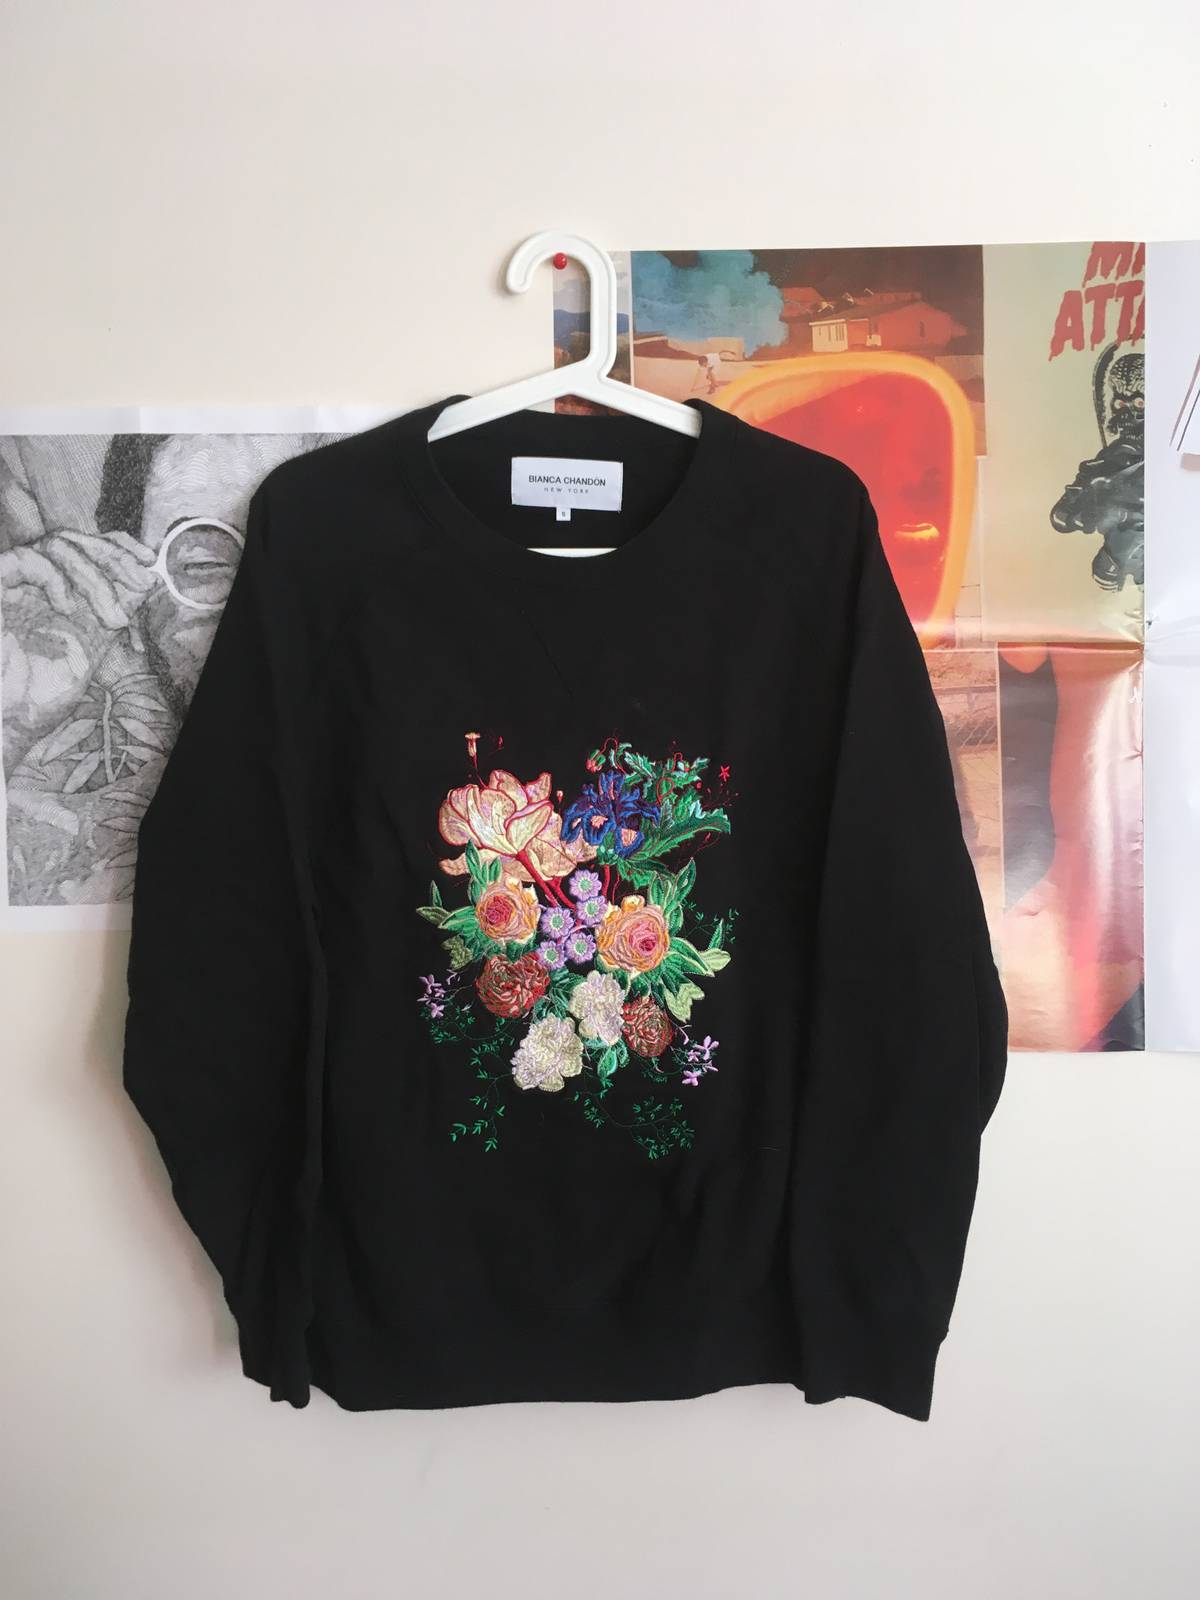 042b8be0fc7639 Bianca Chandon Bianca Chandon Embroidered Floral Crewneck Size s -  Sweatshirts   Hoodies for Sale - Grailed